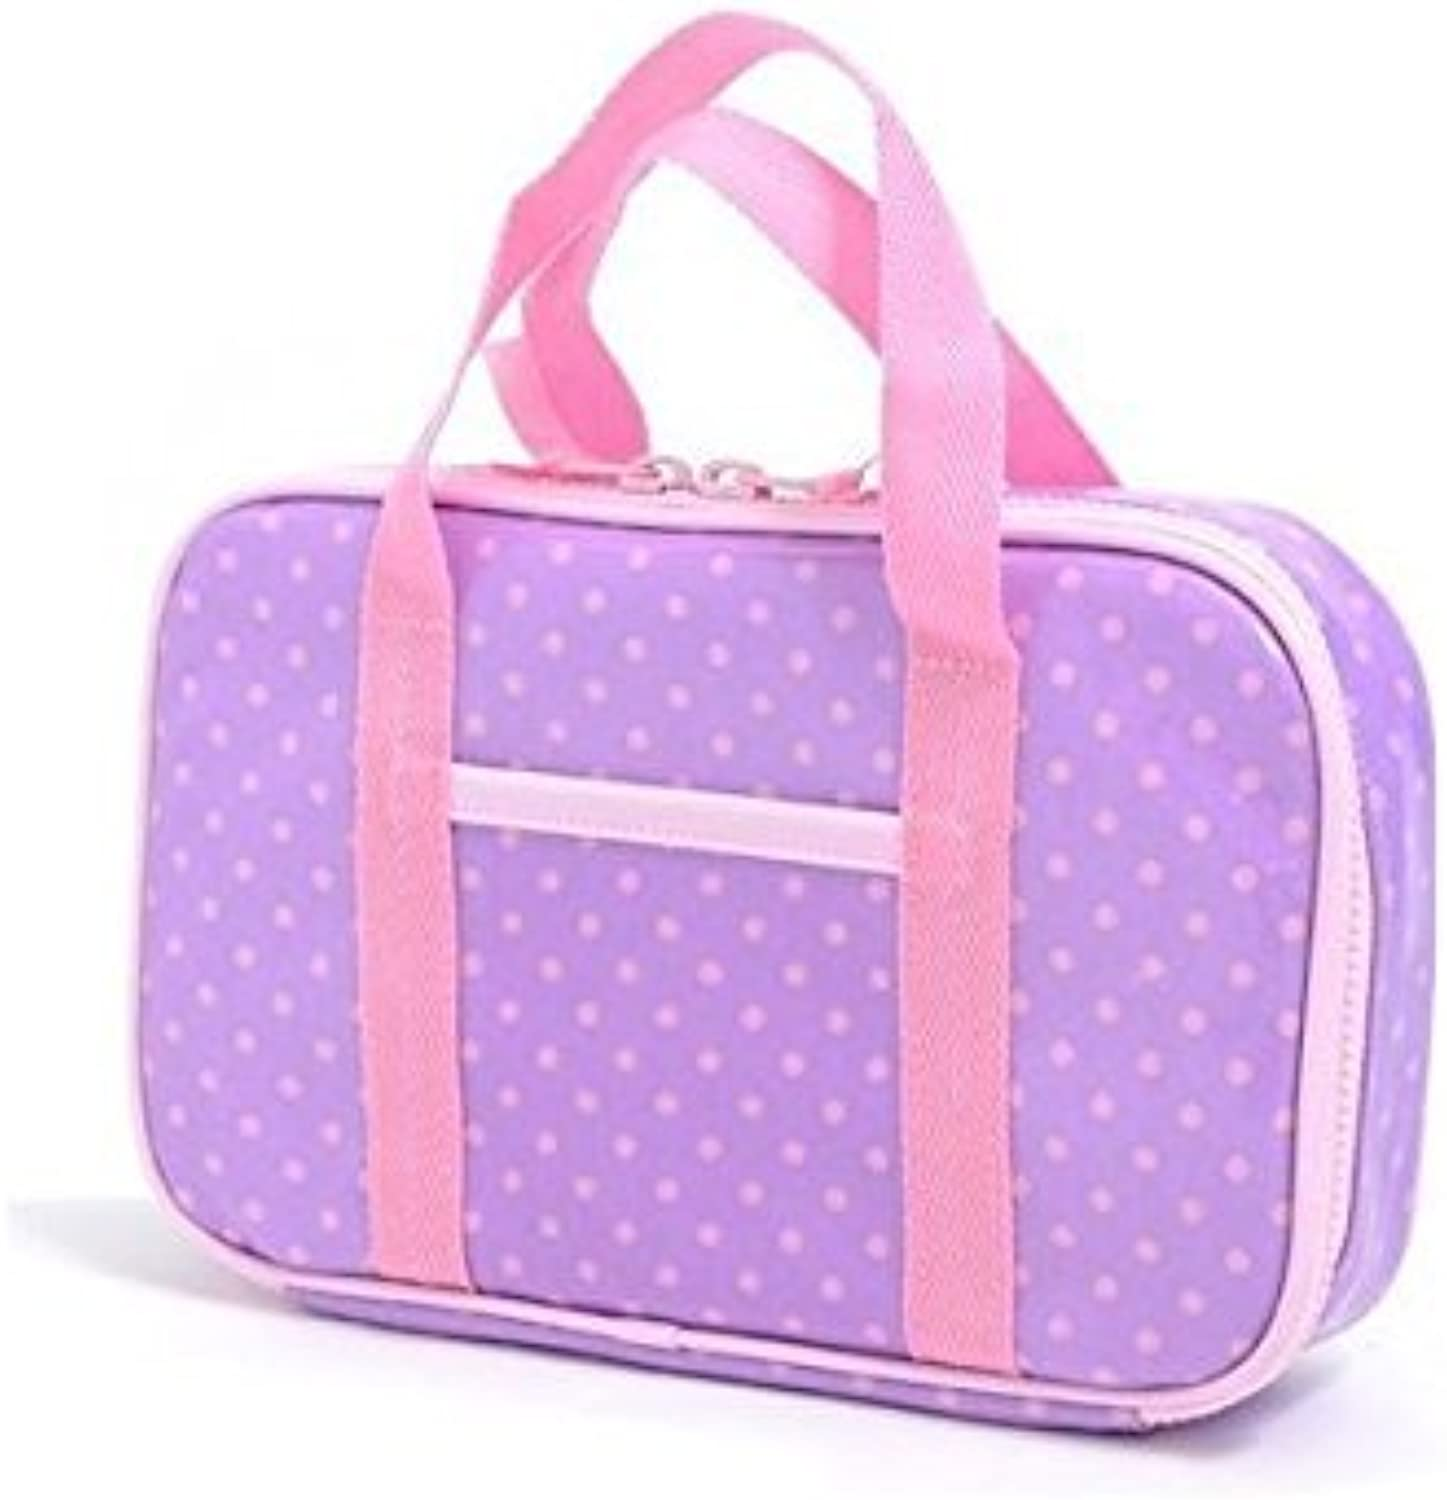 Made in Japan N2302300 (pink dots on purple ground) Kids sewing bag rated on style polka dot (bag only) (japan import)